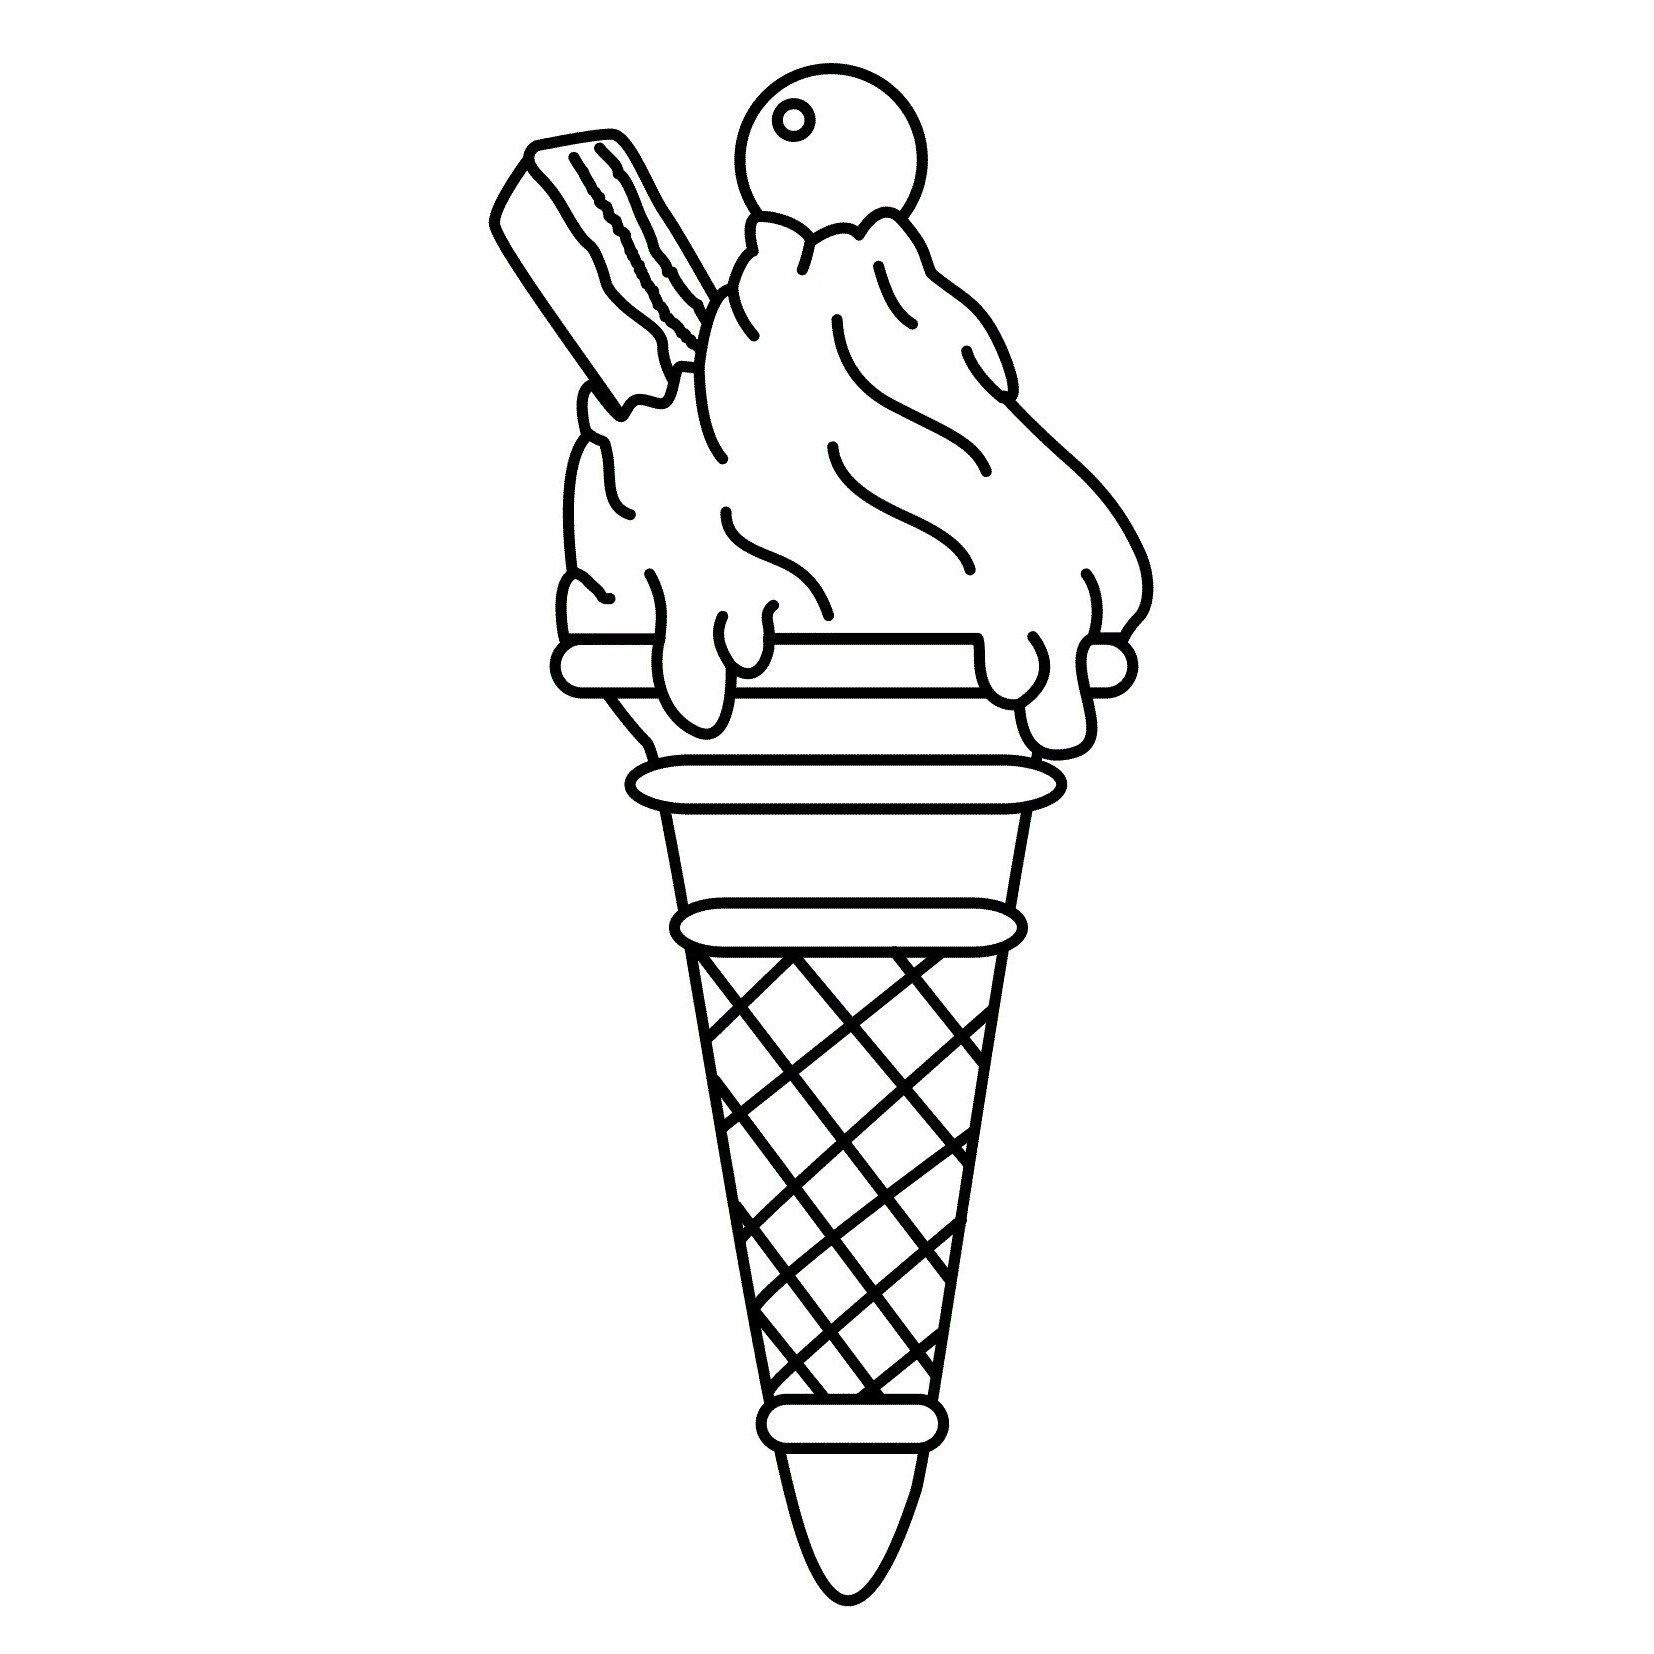 coloring pictures of icecream ice cream coloring pages coloring pages to download and icecream of coloring pictures